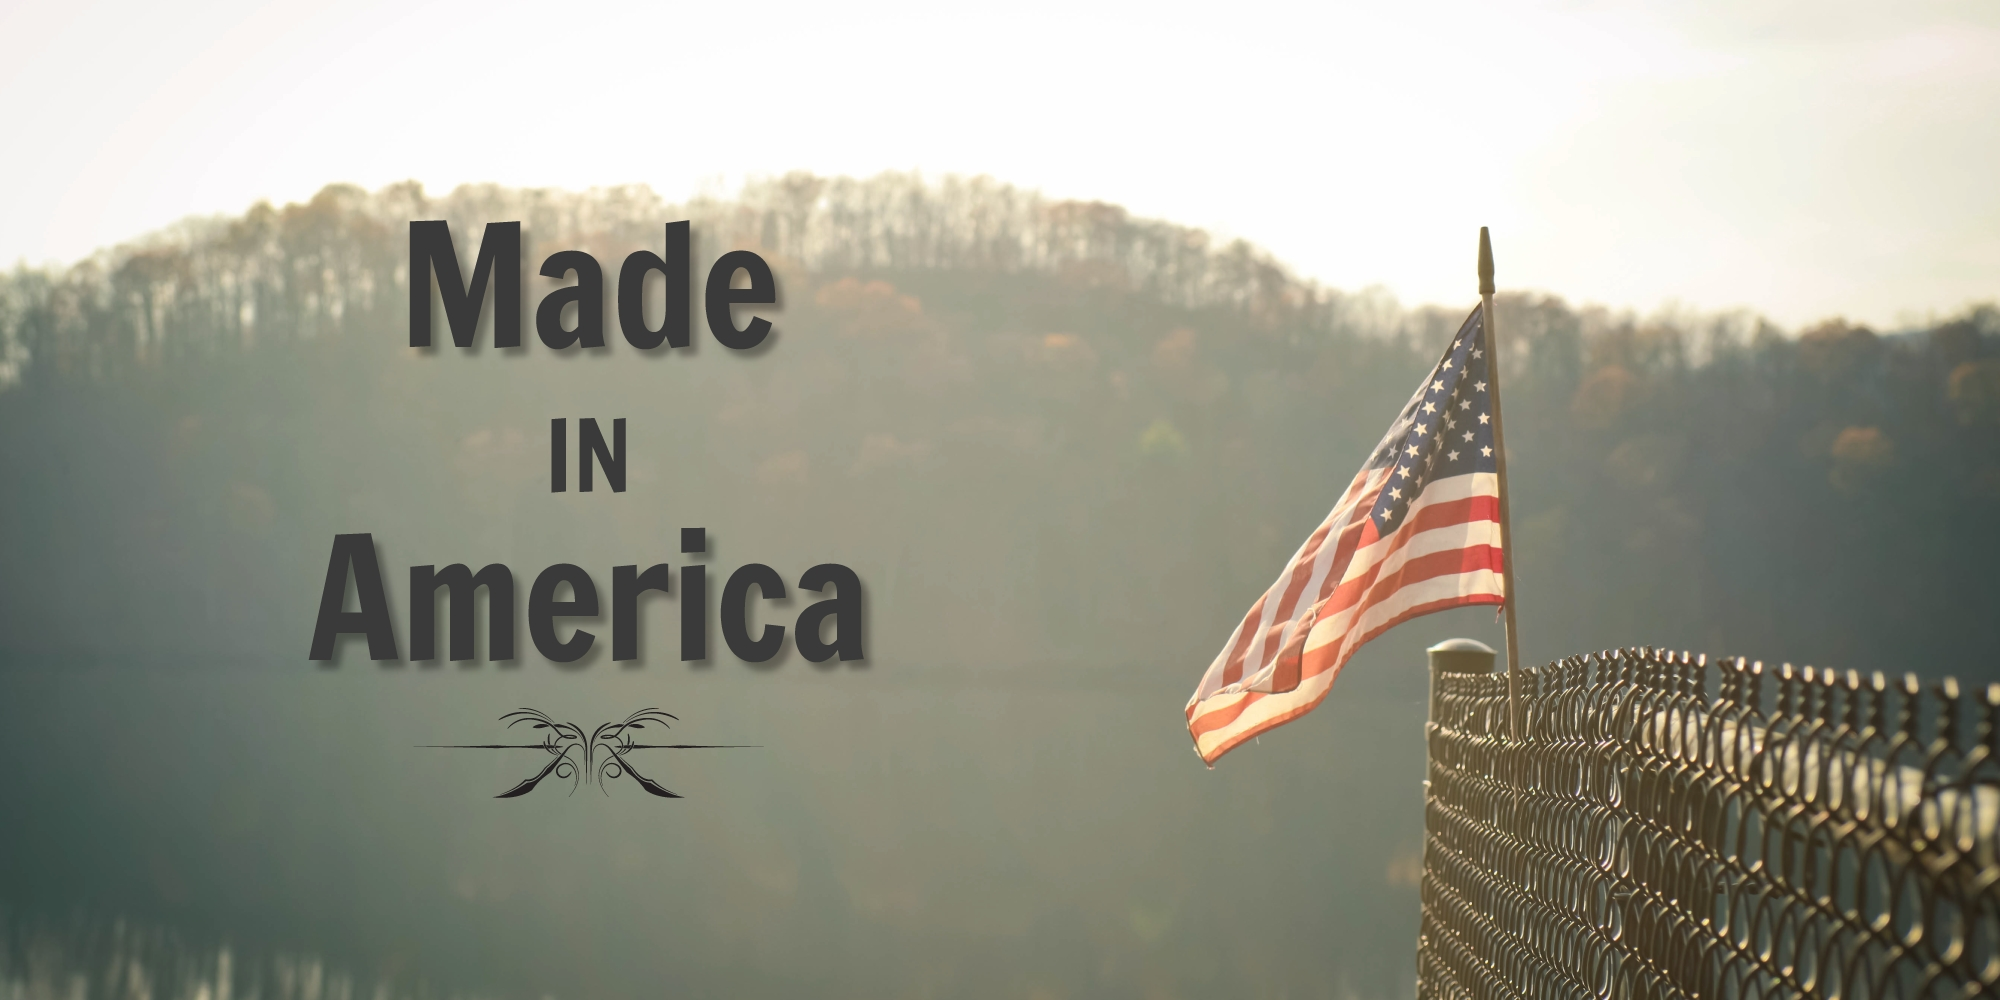 A thorough list of camping and hiking gear made in america for Gear company of america